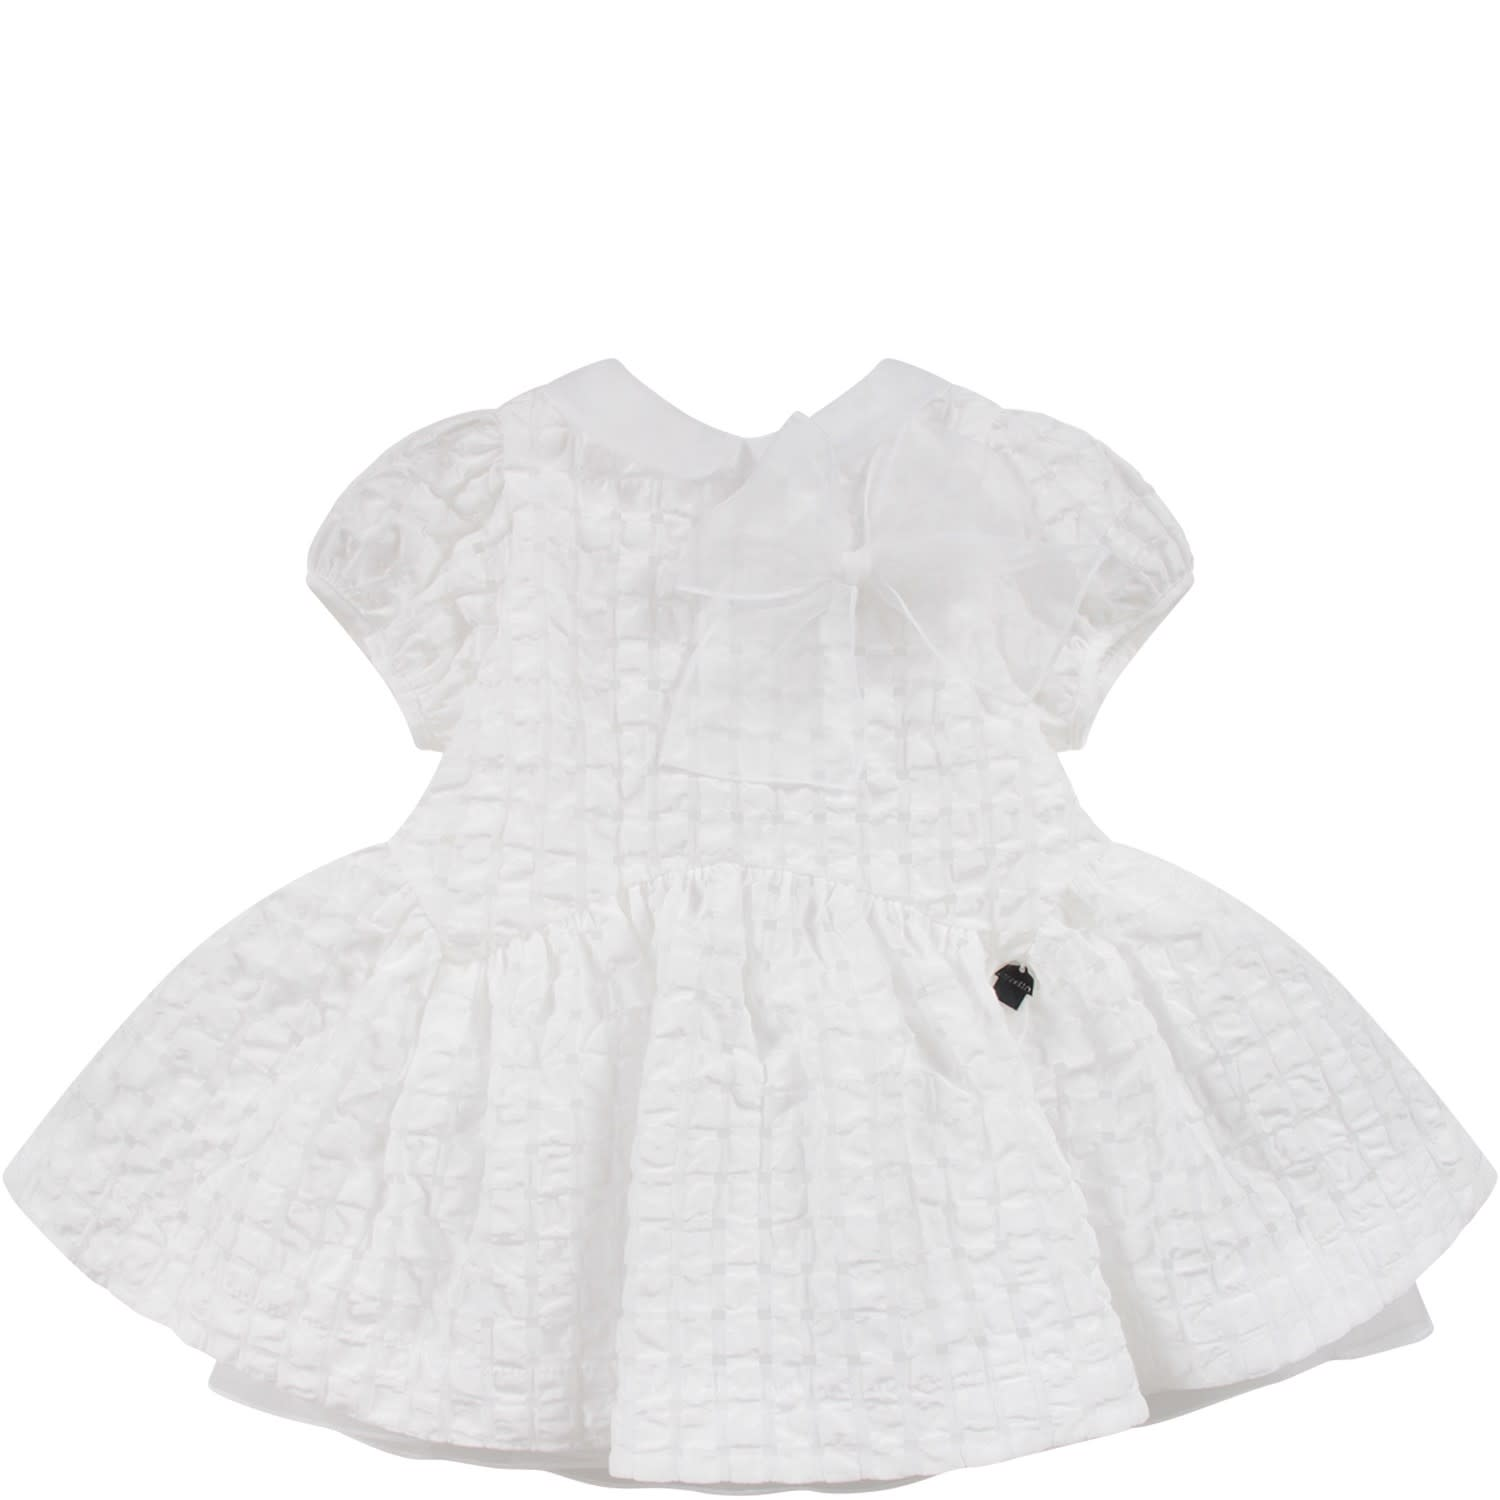 Buy Simonetta White Babygirl Dress With Bow online, shop Simonetta with free shipping